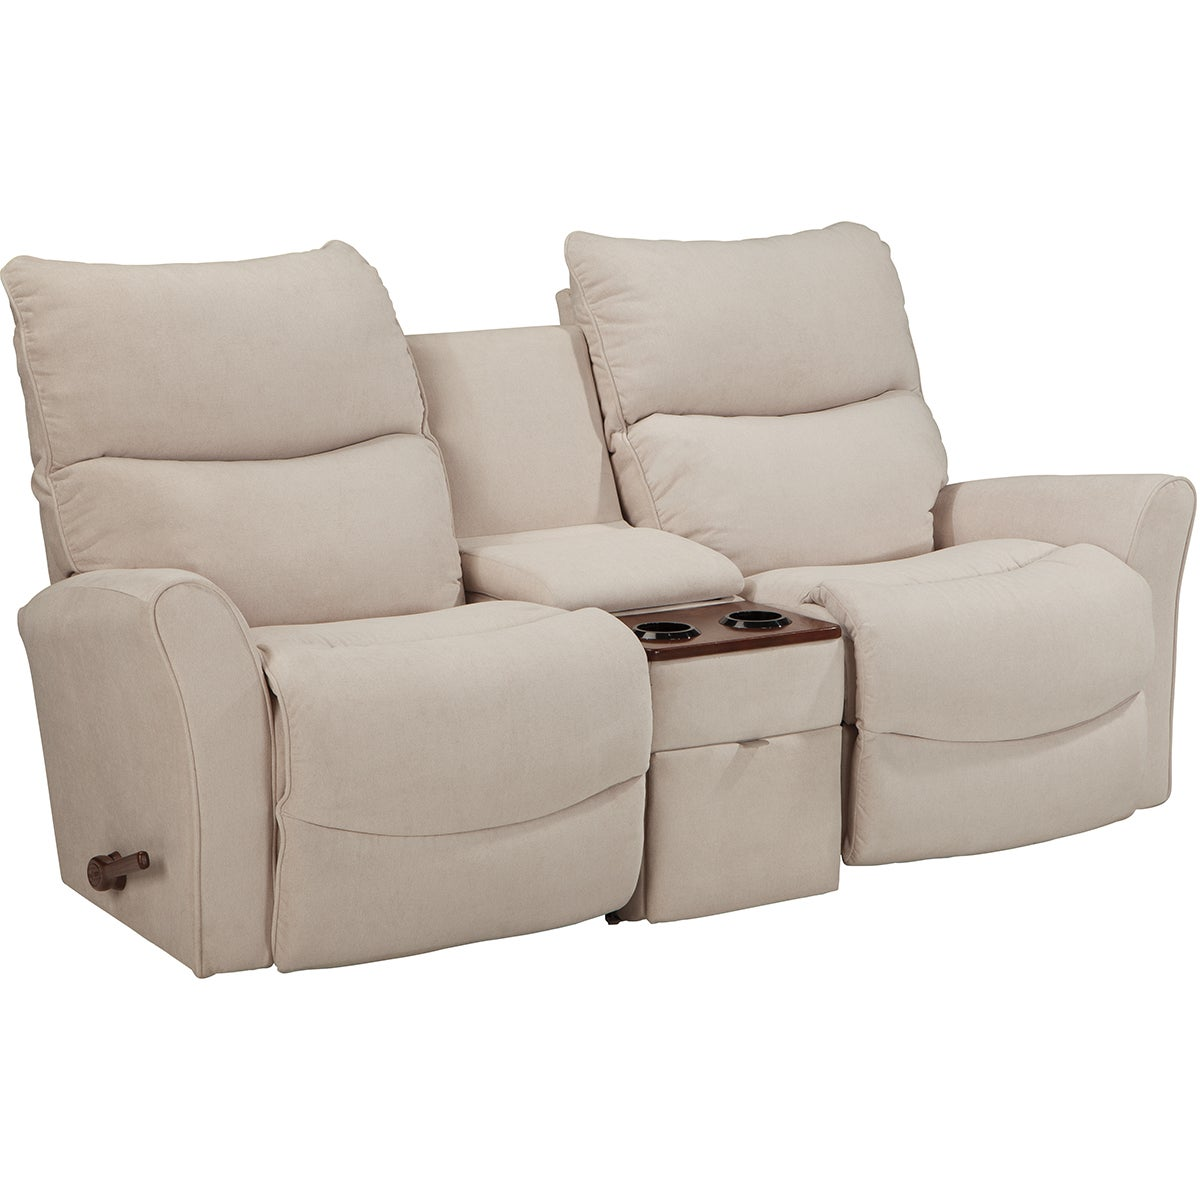 Rowan Loveseat | La Z Boy